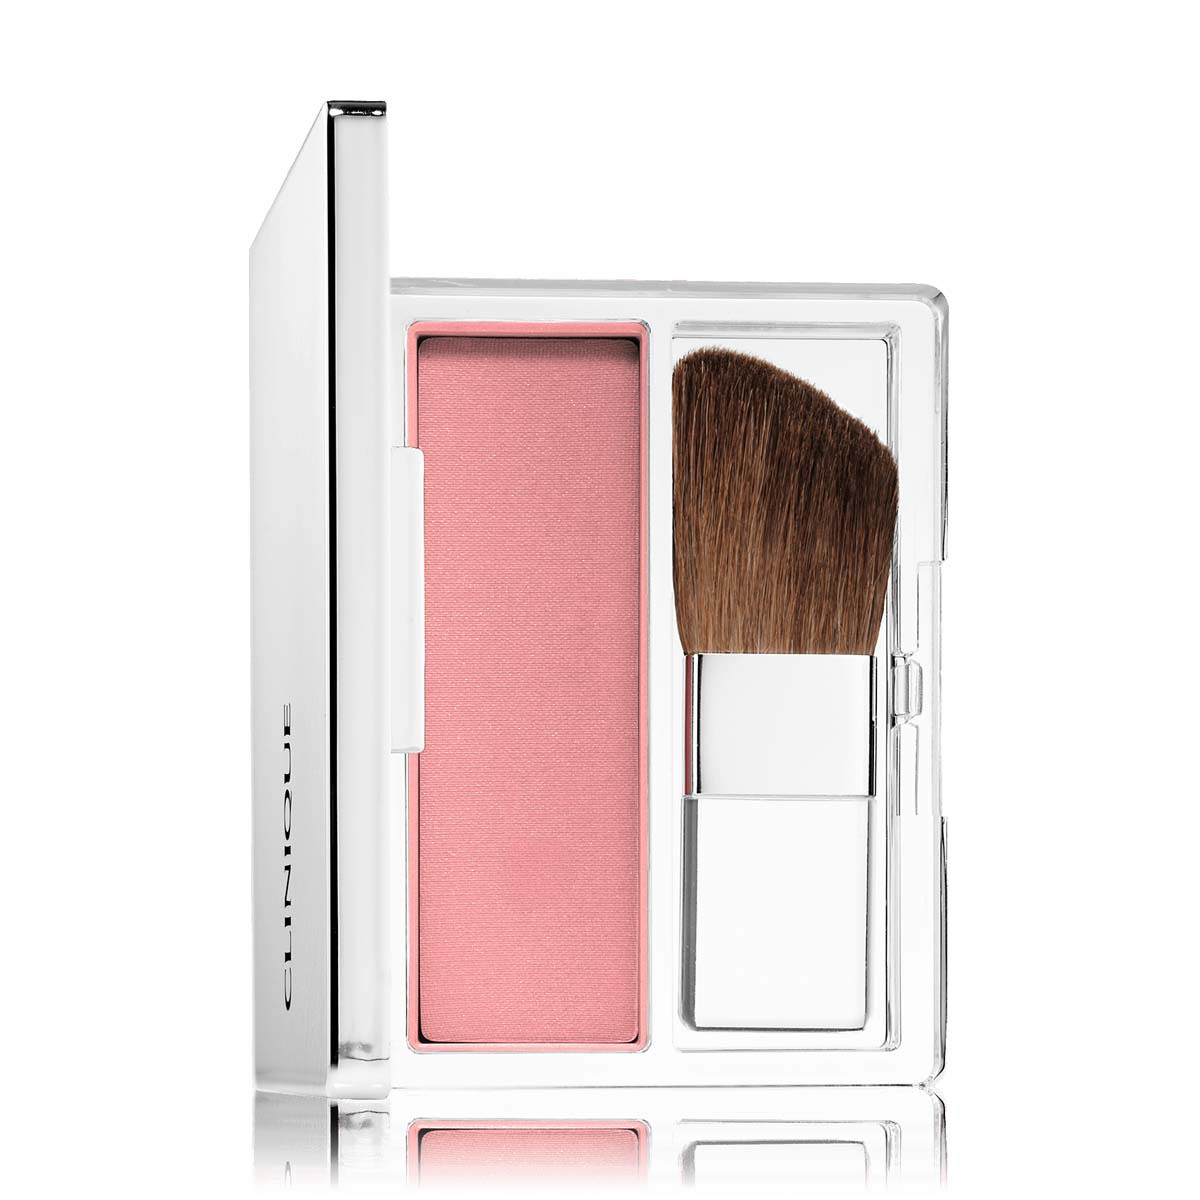 Clinique blushing blush - 102 innocent peach, 102 INNOCENT PEACH, large image number 0